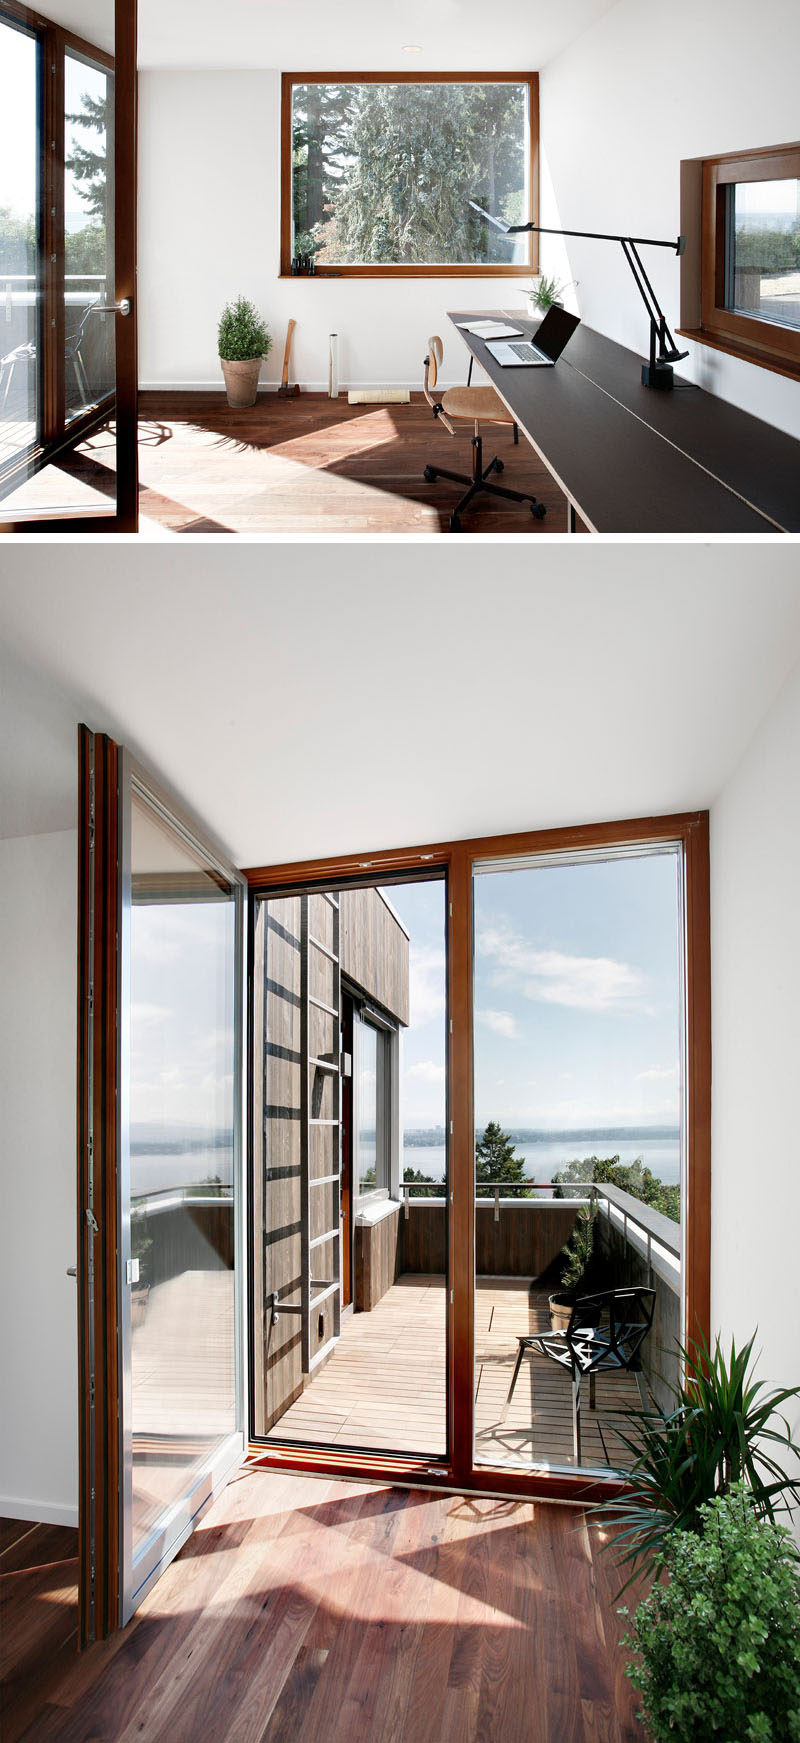 This modern and minimalist home office has a couple of windows with views of the trees and access to a small balcony. #HomeOffice #Balcony #Windows